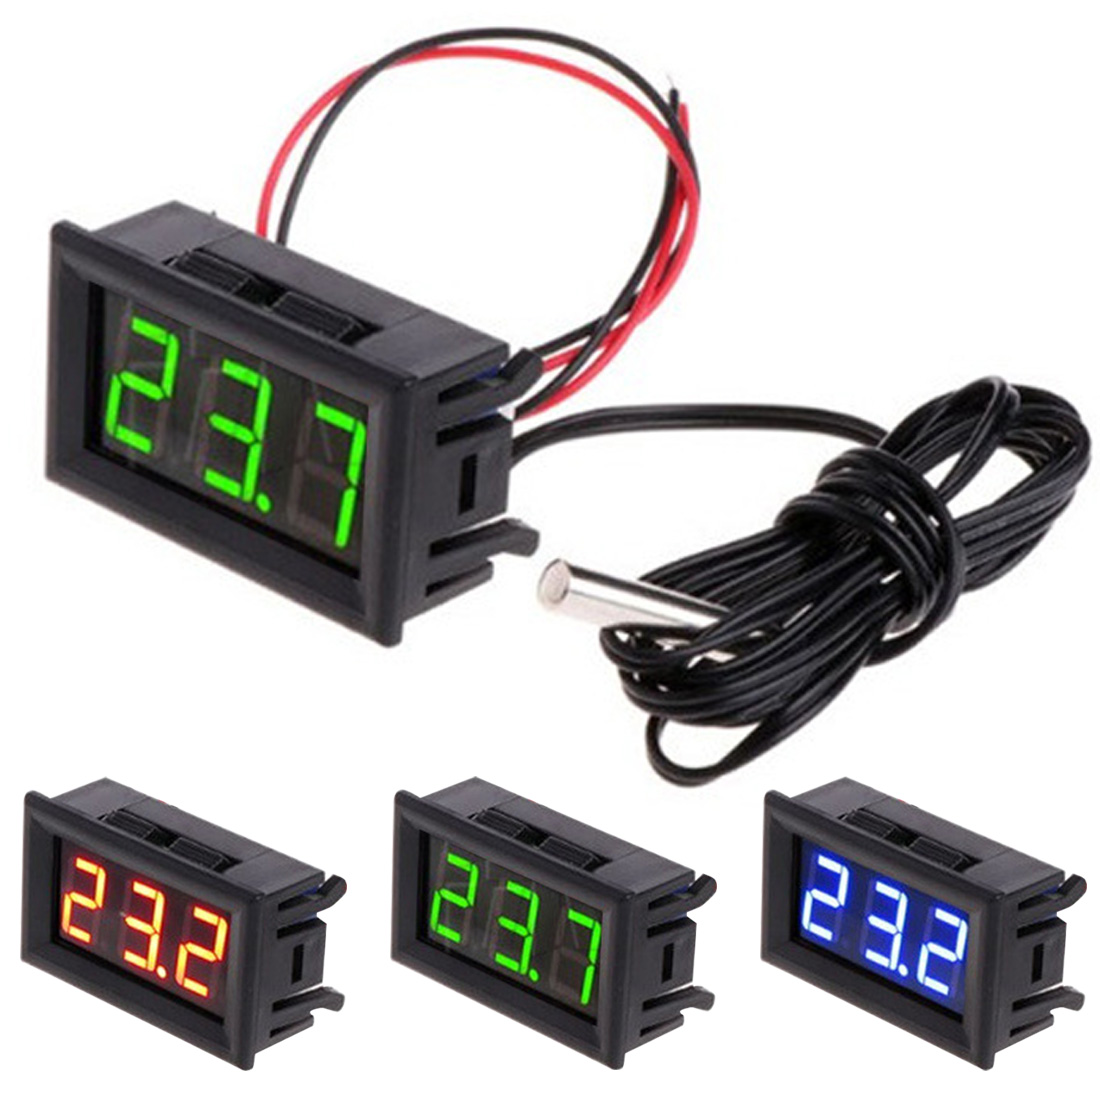 Mini DC 5-12V Digital LED -<font><b>50</b></font> ~ <font><b>110C</b></font> Thermometer Automotive Temperature Monitor Panel Meter Digital Thermometer image